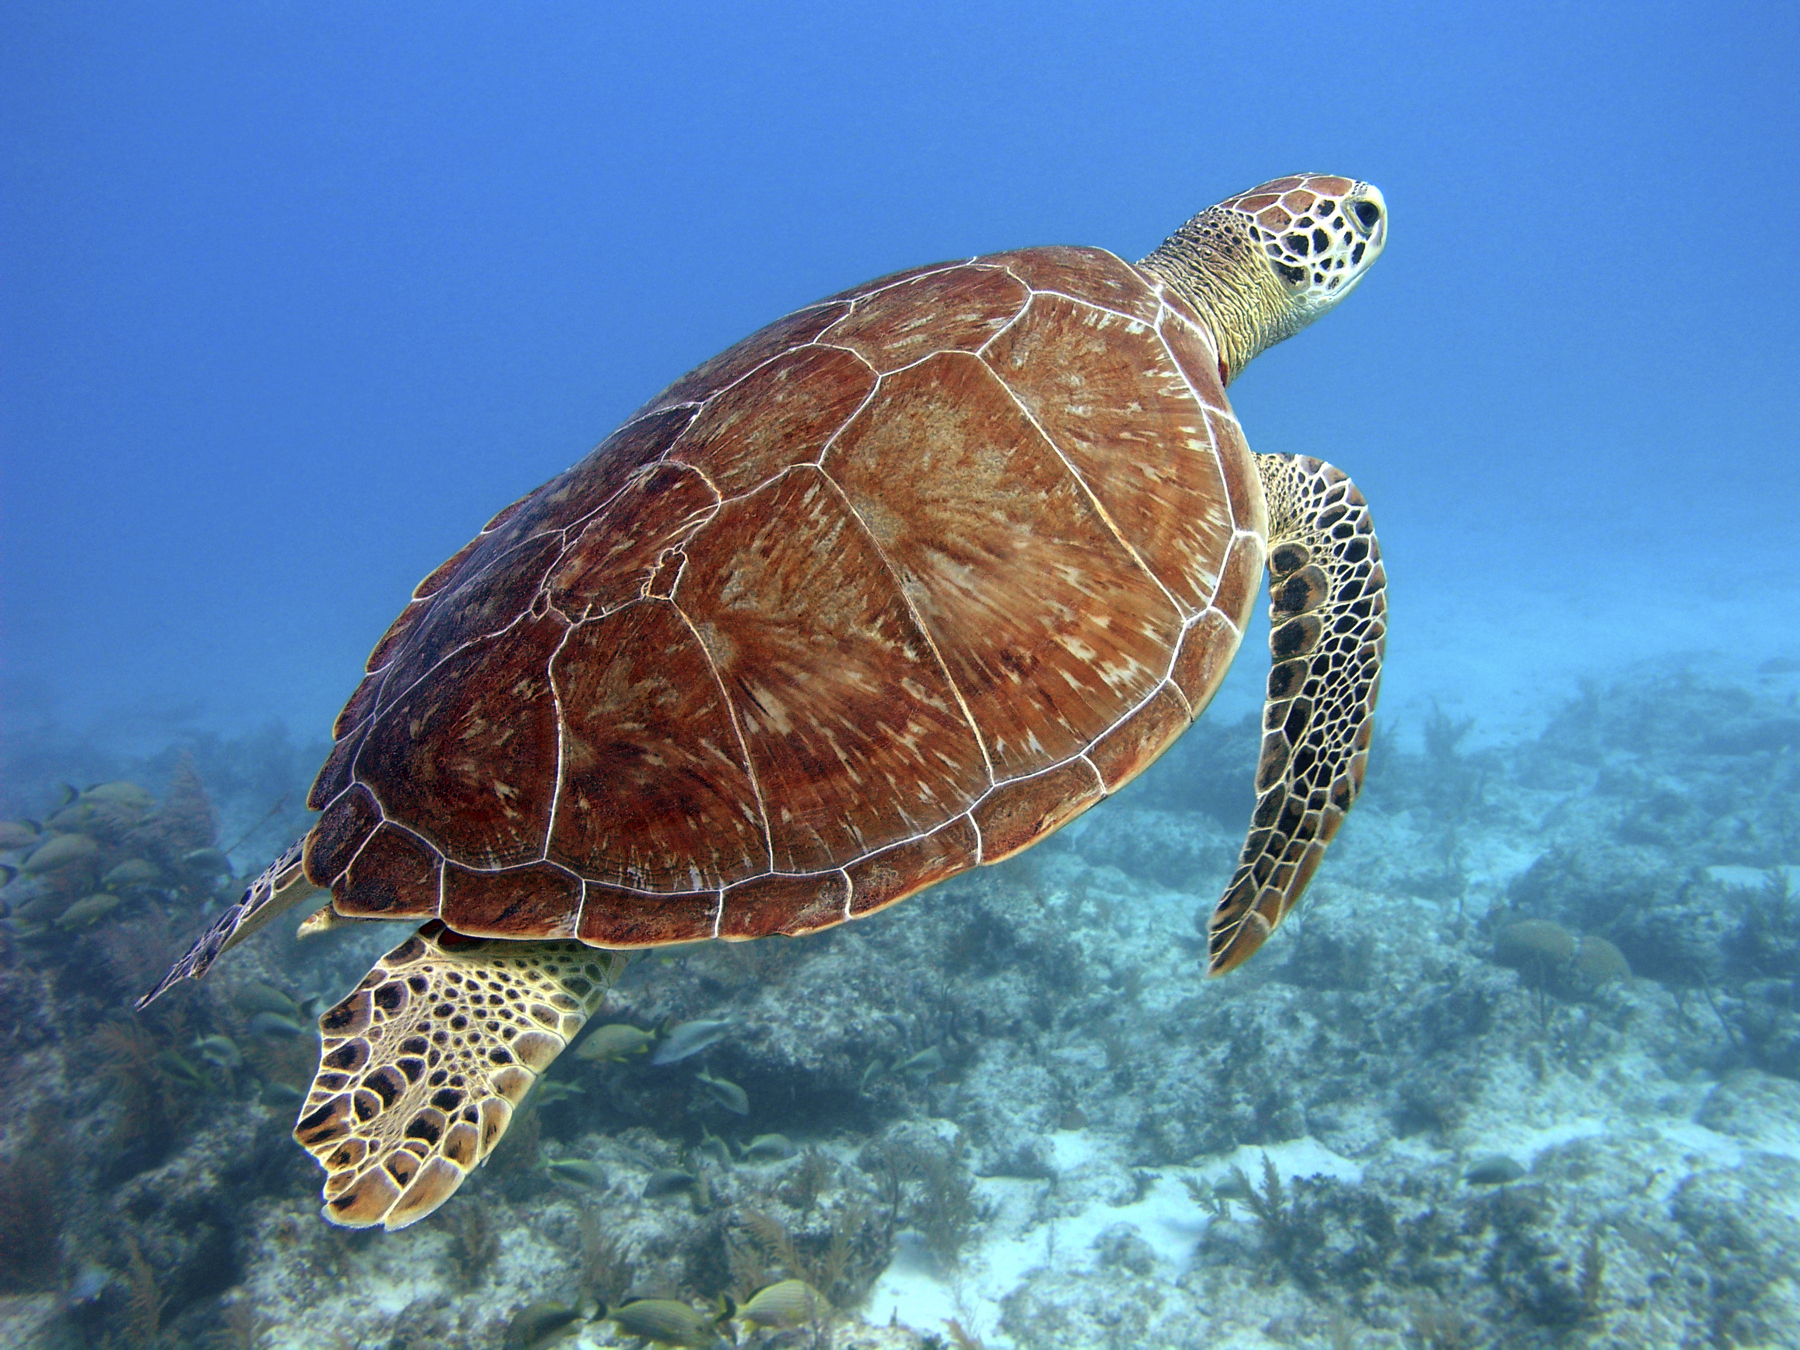 Green turtle, snorkeling in the Florida Keys